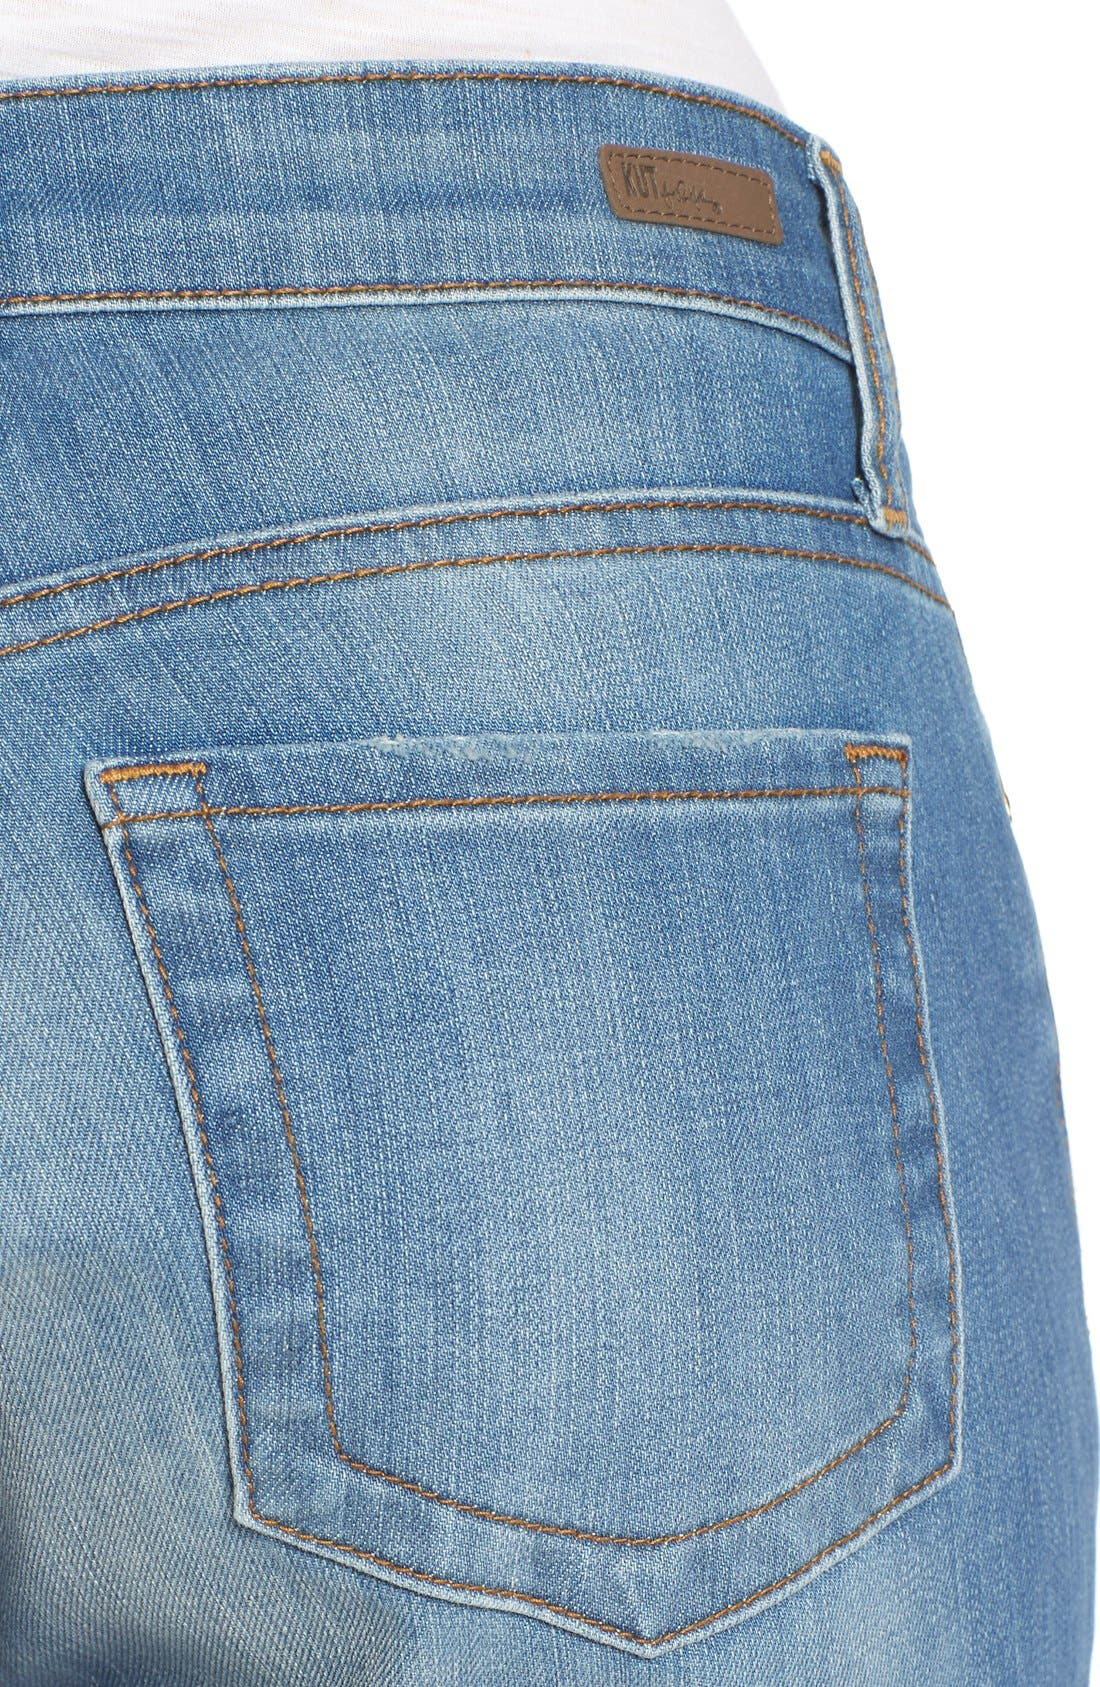 KUT FROM THE KLOTH, 'Catherine' Distressed Stretch Boyfriend Jeans, Alternate thumbnail 2, color, 401